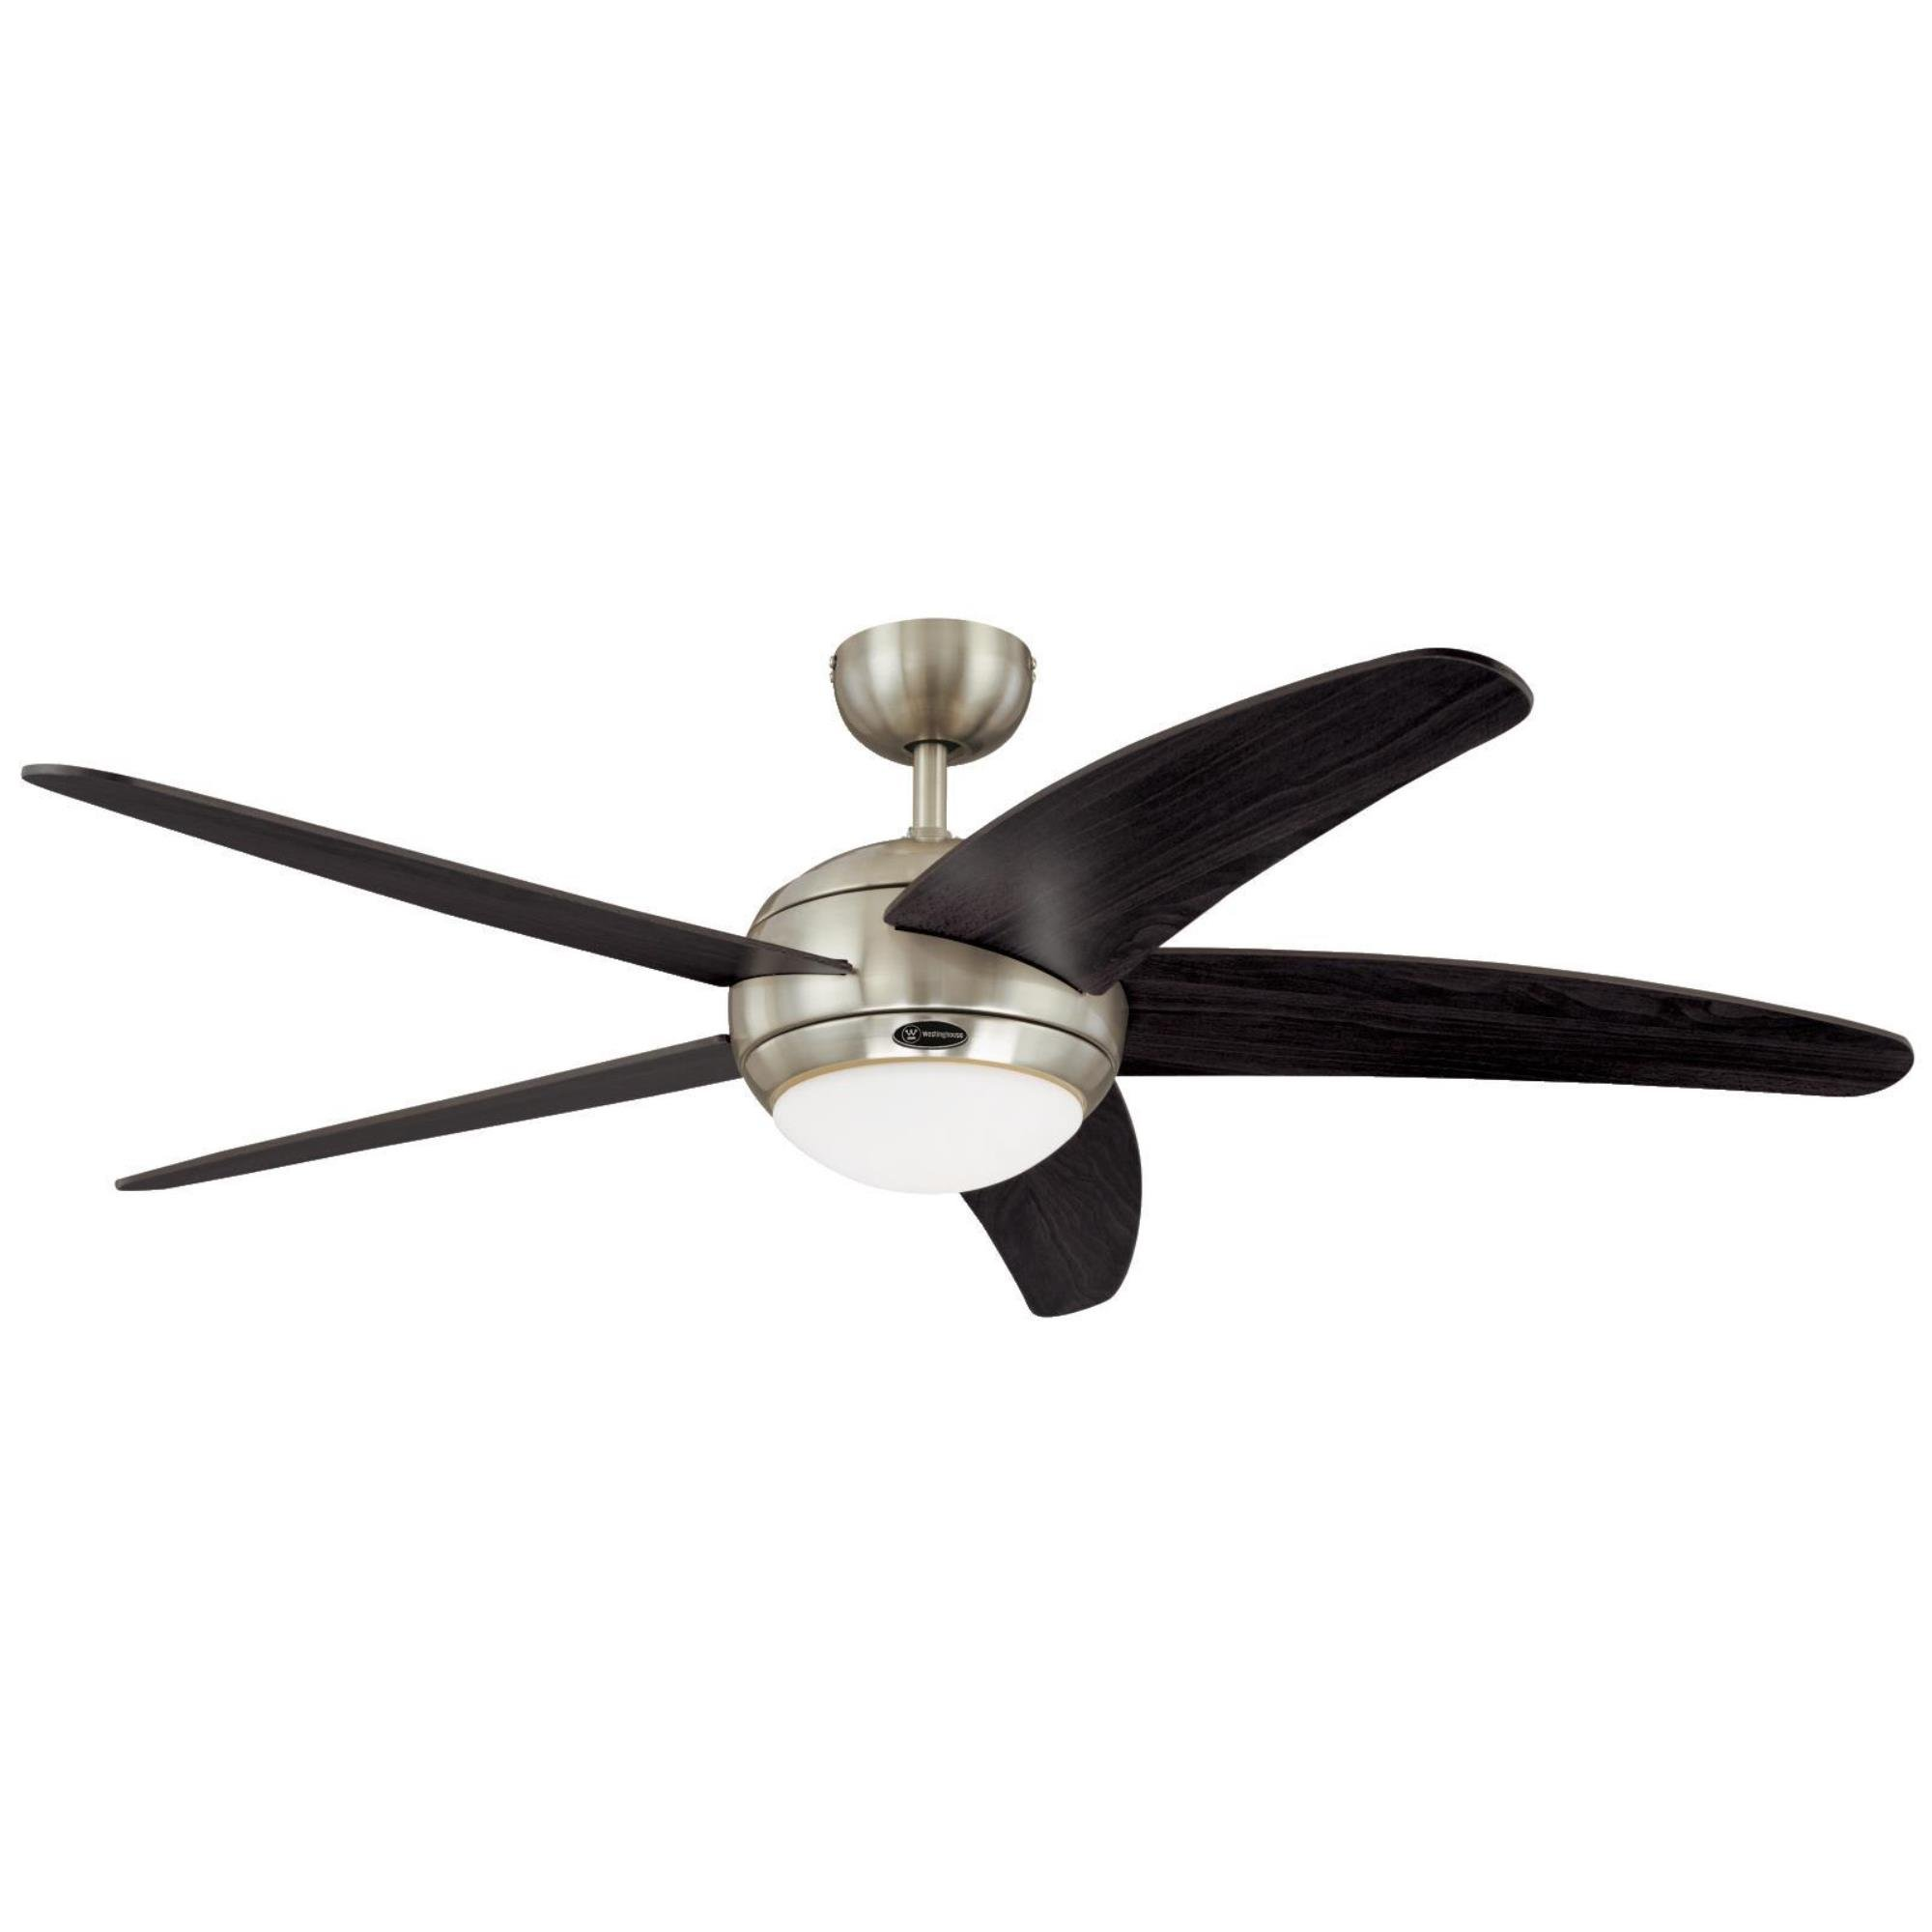 7255700 Bendan 52-Inch Satin Chrome Indoor Ceiling Fan, Light Kit with Opal Frosted Glass